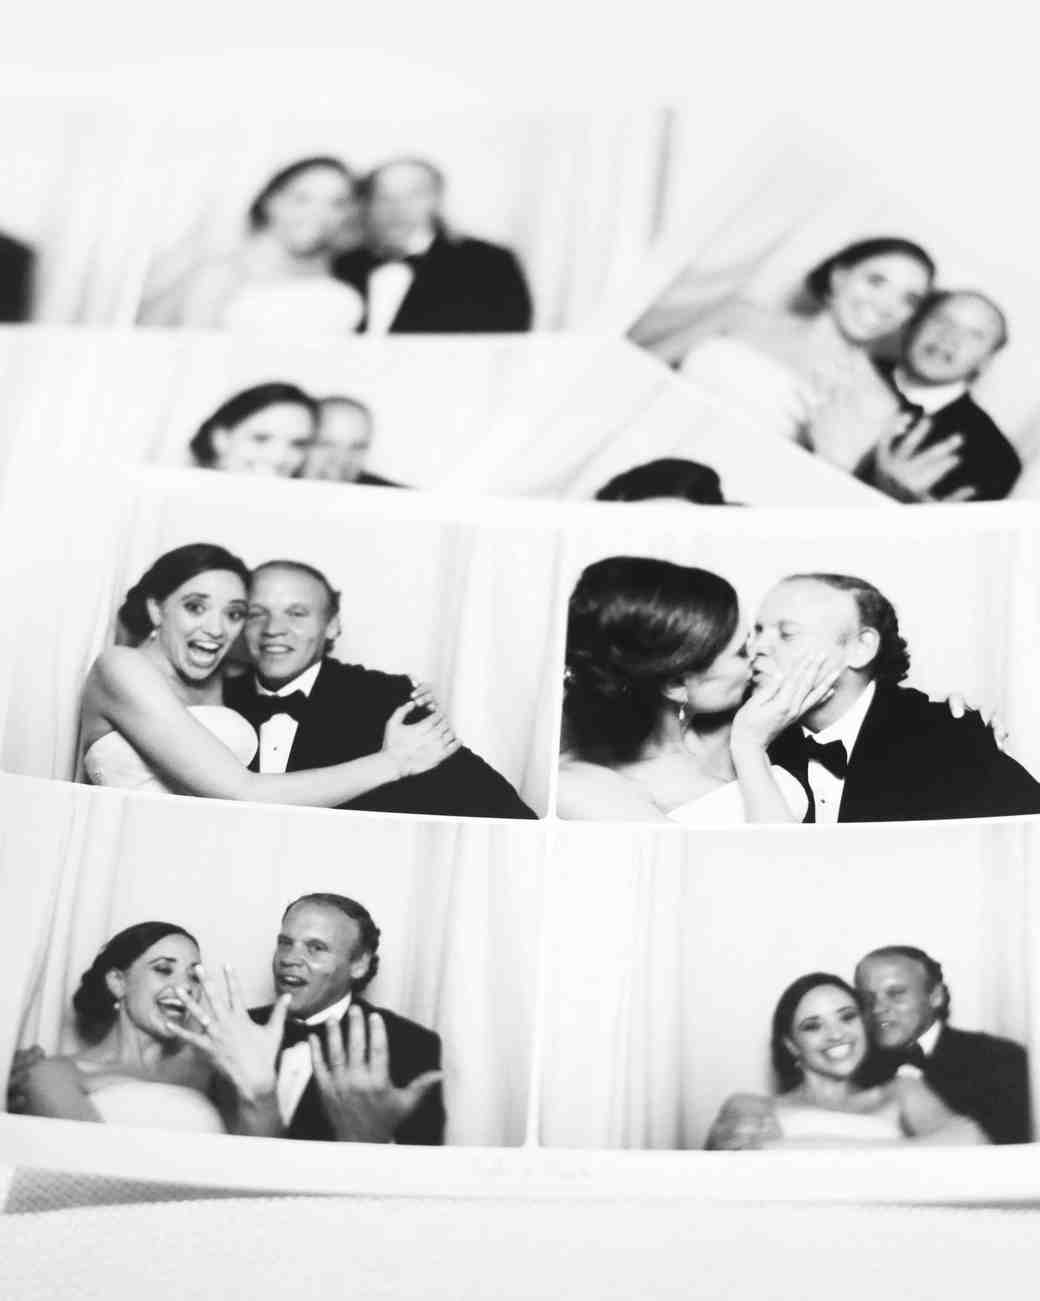 bride-groom-photobooth-bw-26128eg5u3997-2902112183-o-mwds110788.jpg